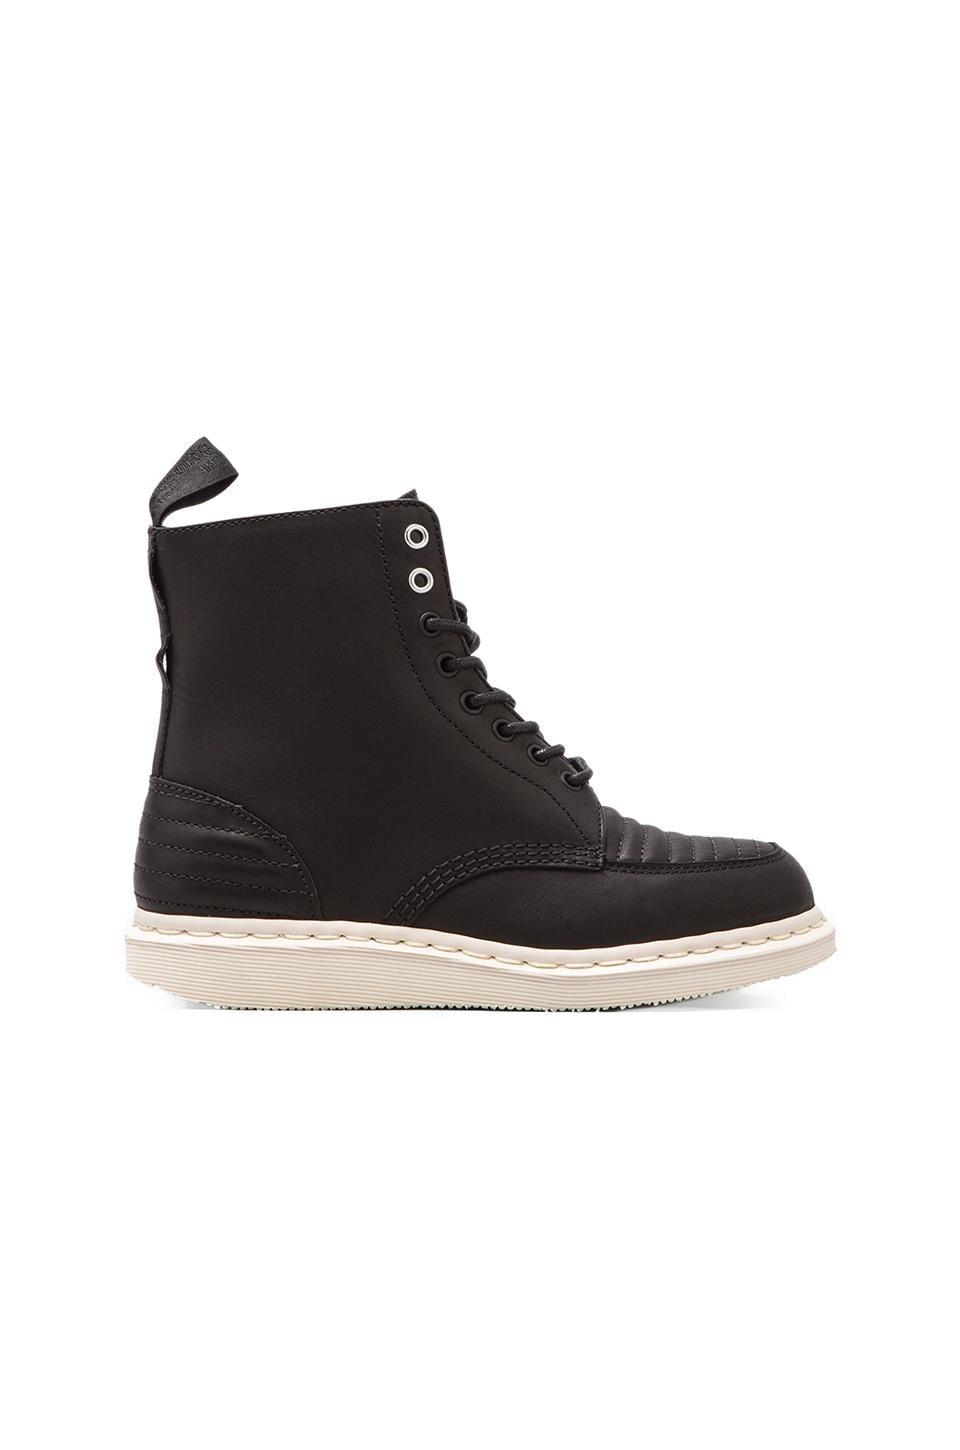 Dr. Martens Javyon 8-Eye Toe Cap Boot in Black